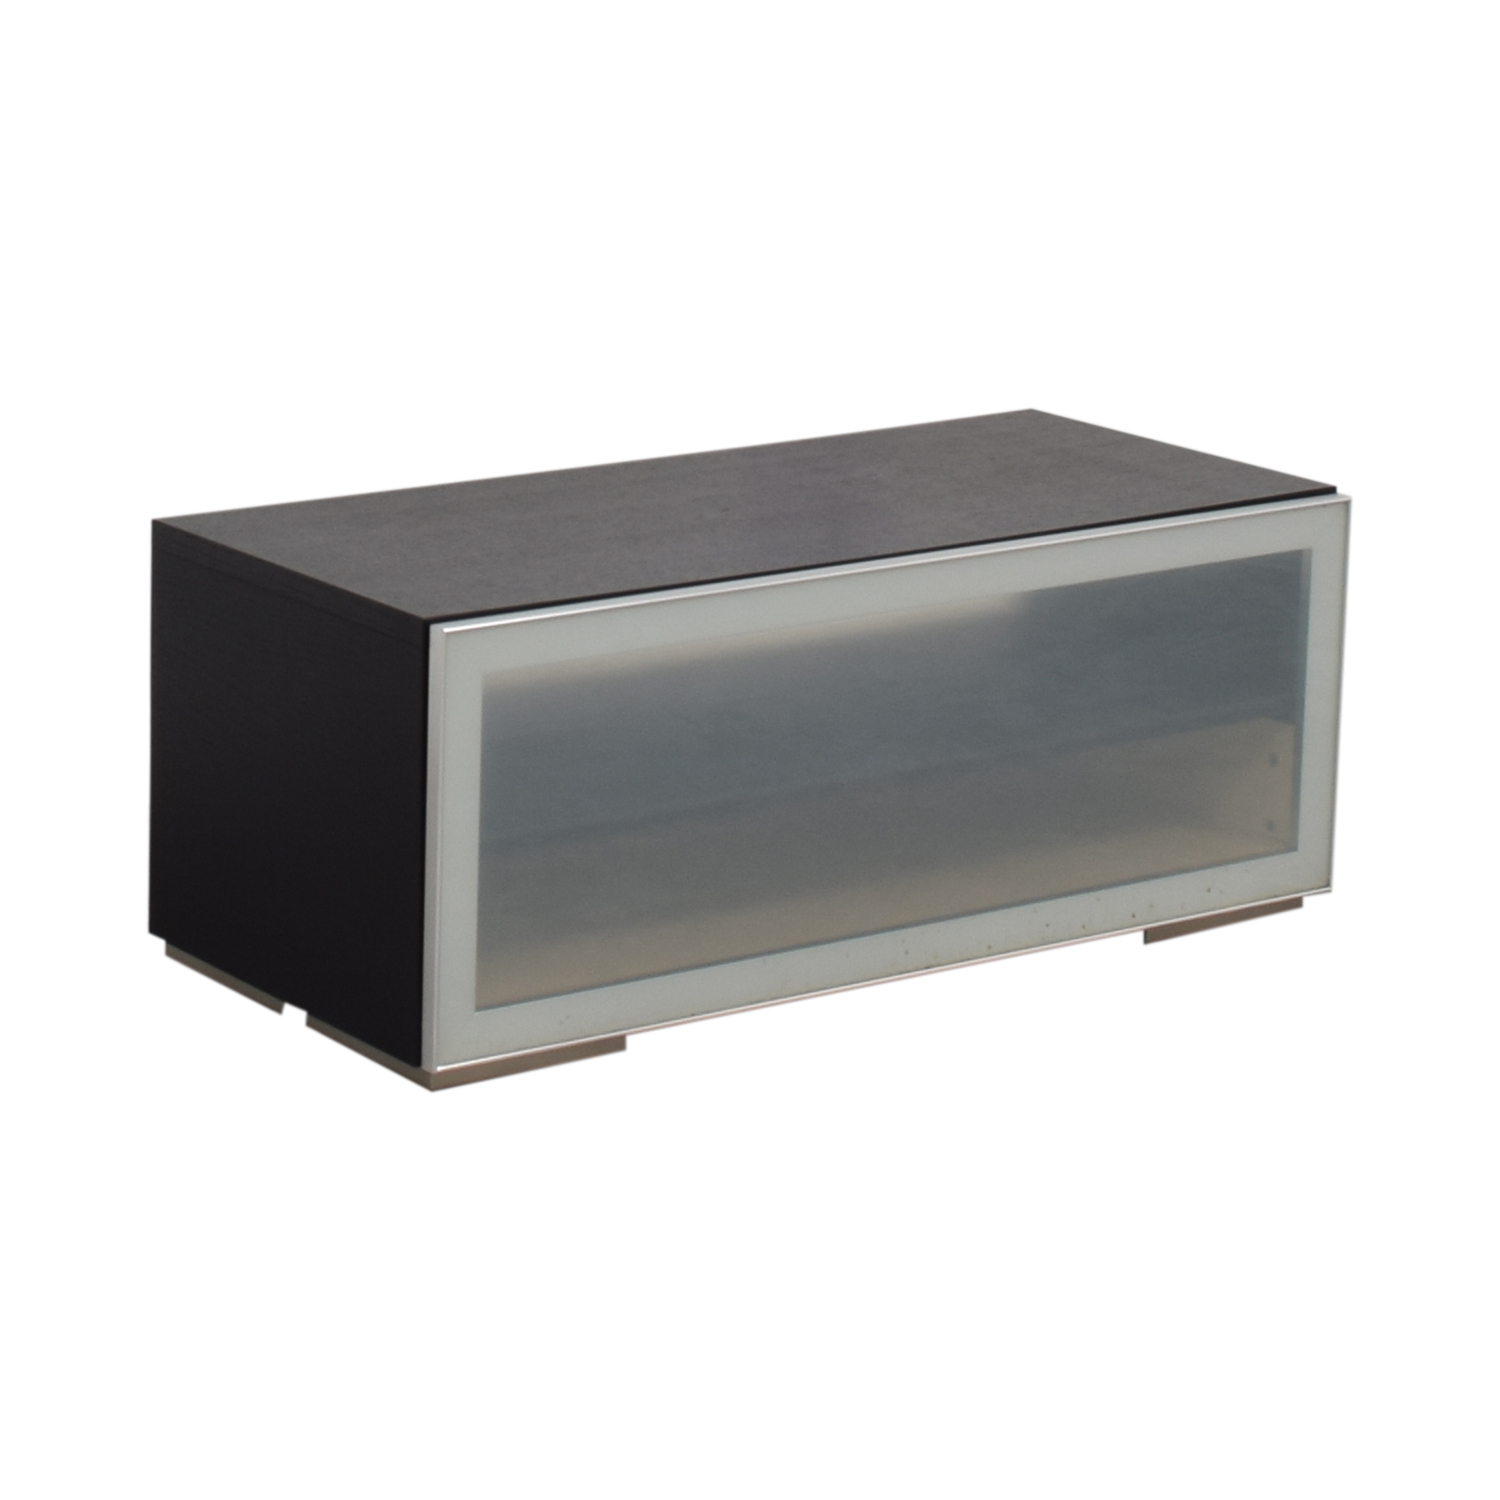 BoConcept BoConcept Glass and Wood Media Console price